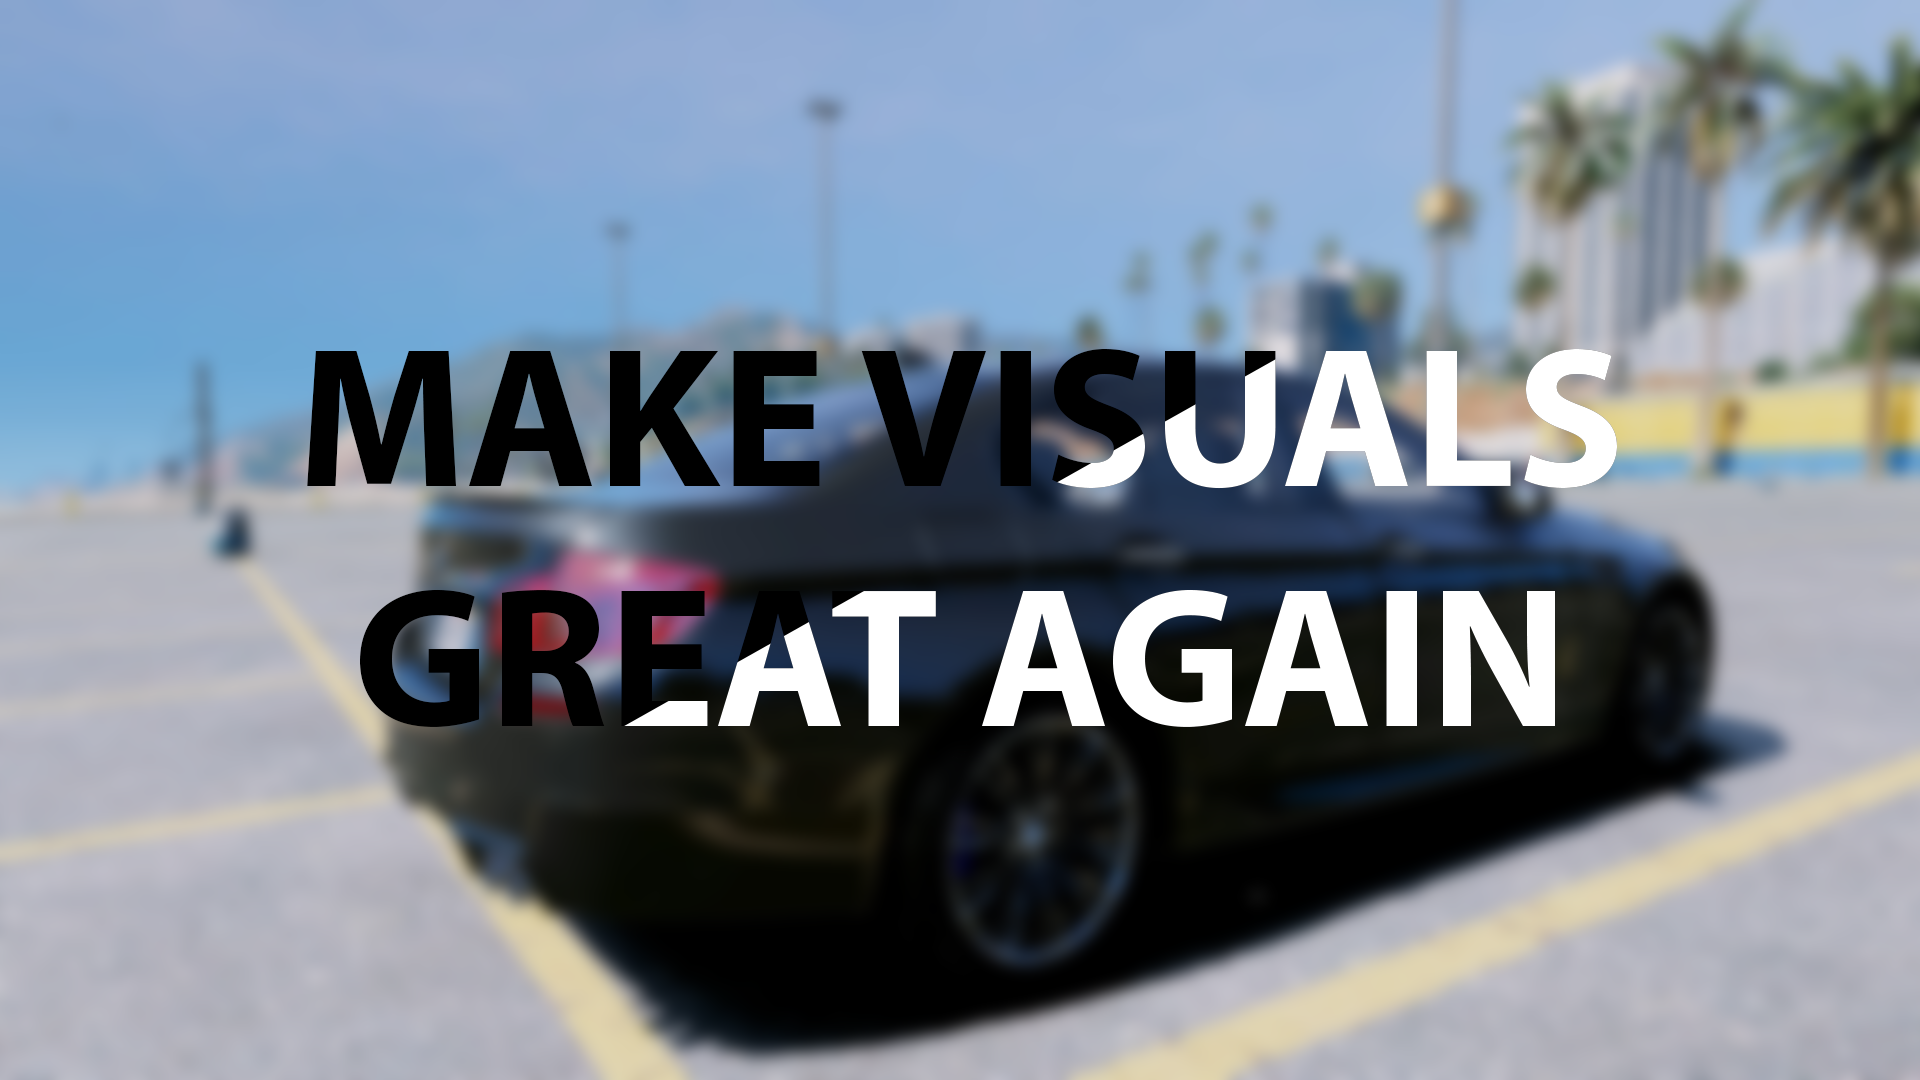 Make Visuals Great Again